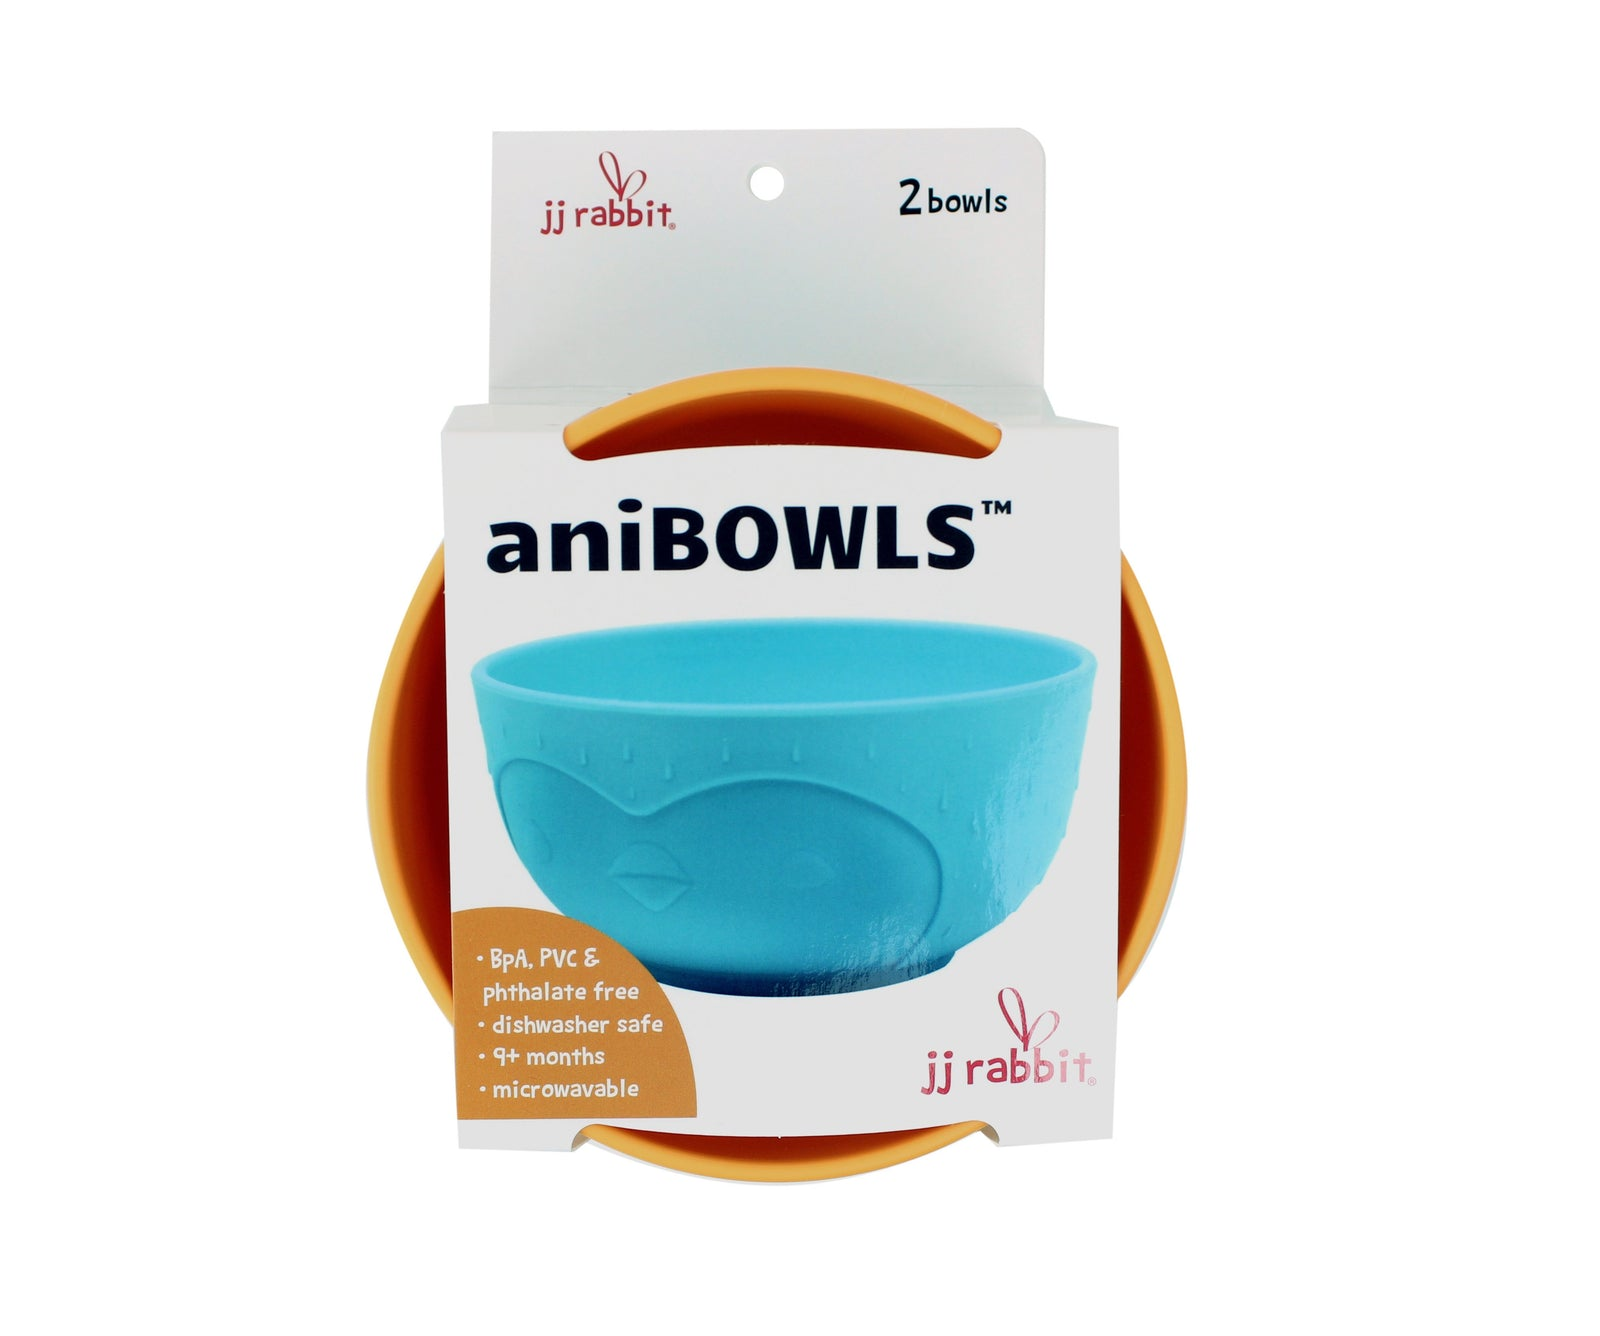 JJ Rabbit® aniBOWLs™ in (Orange & Blue)